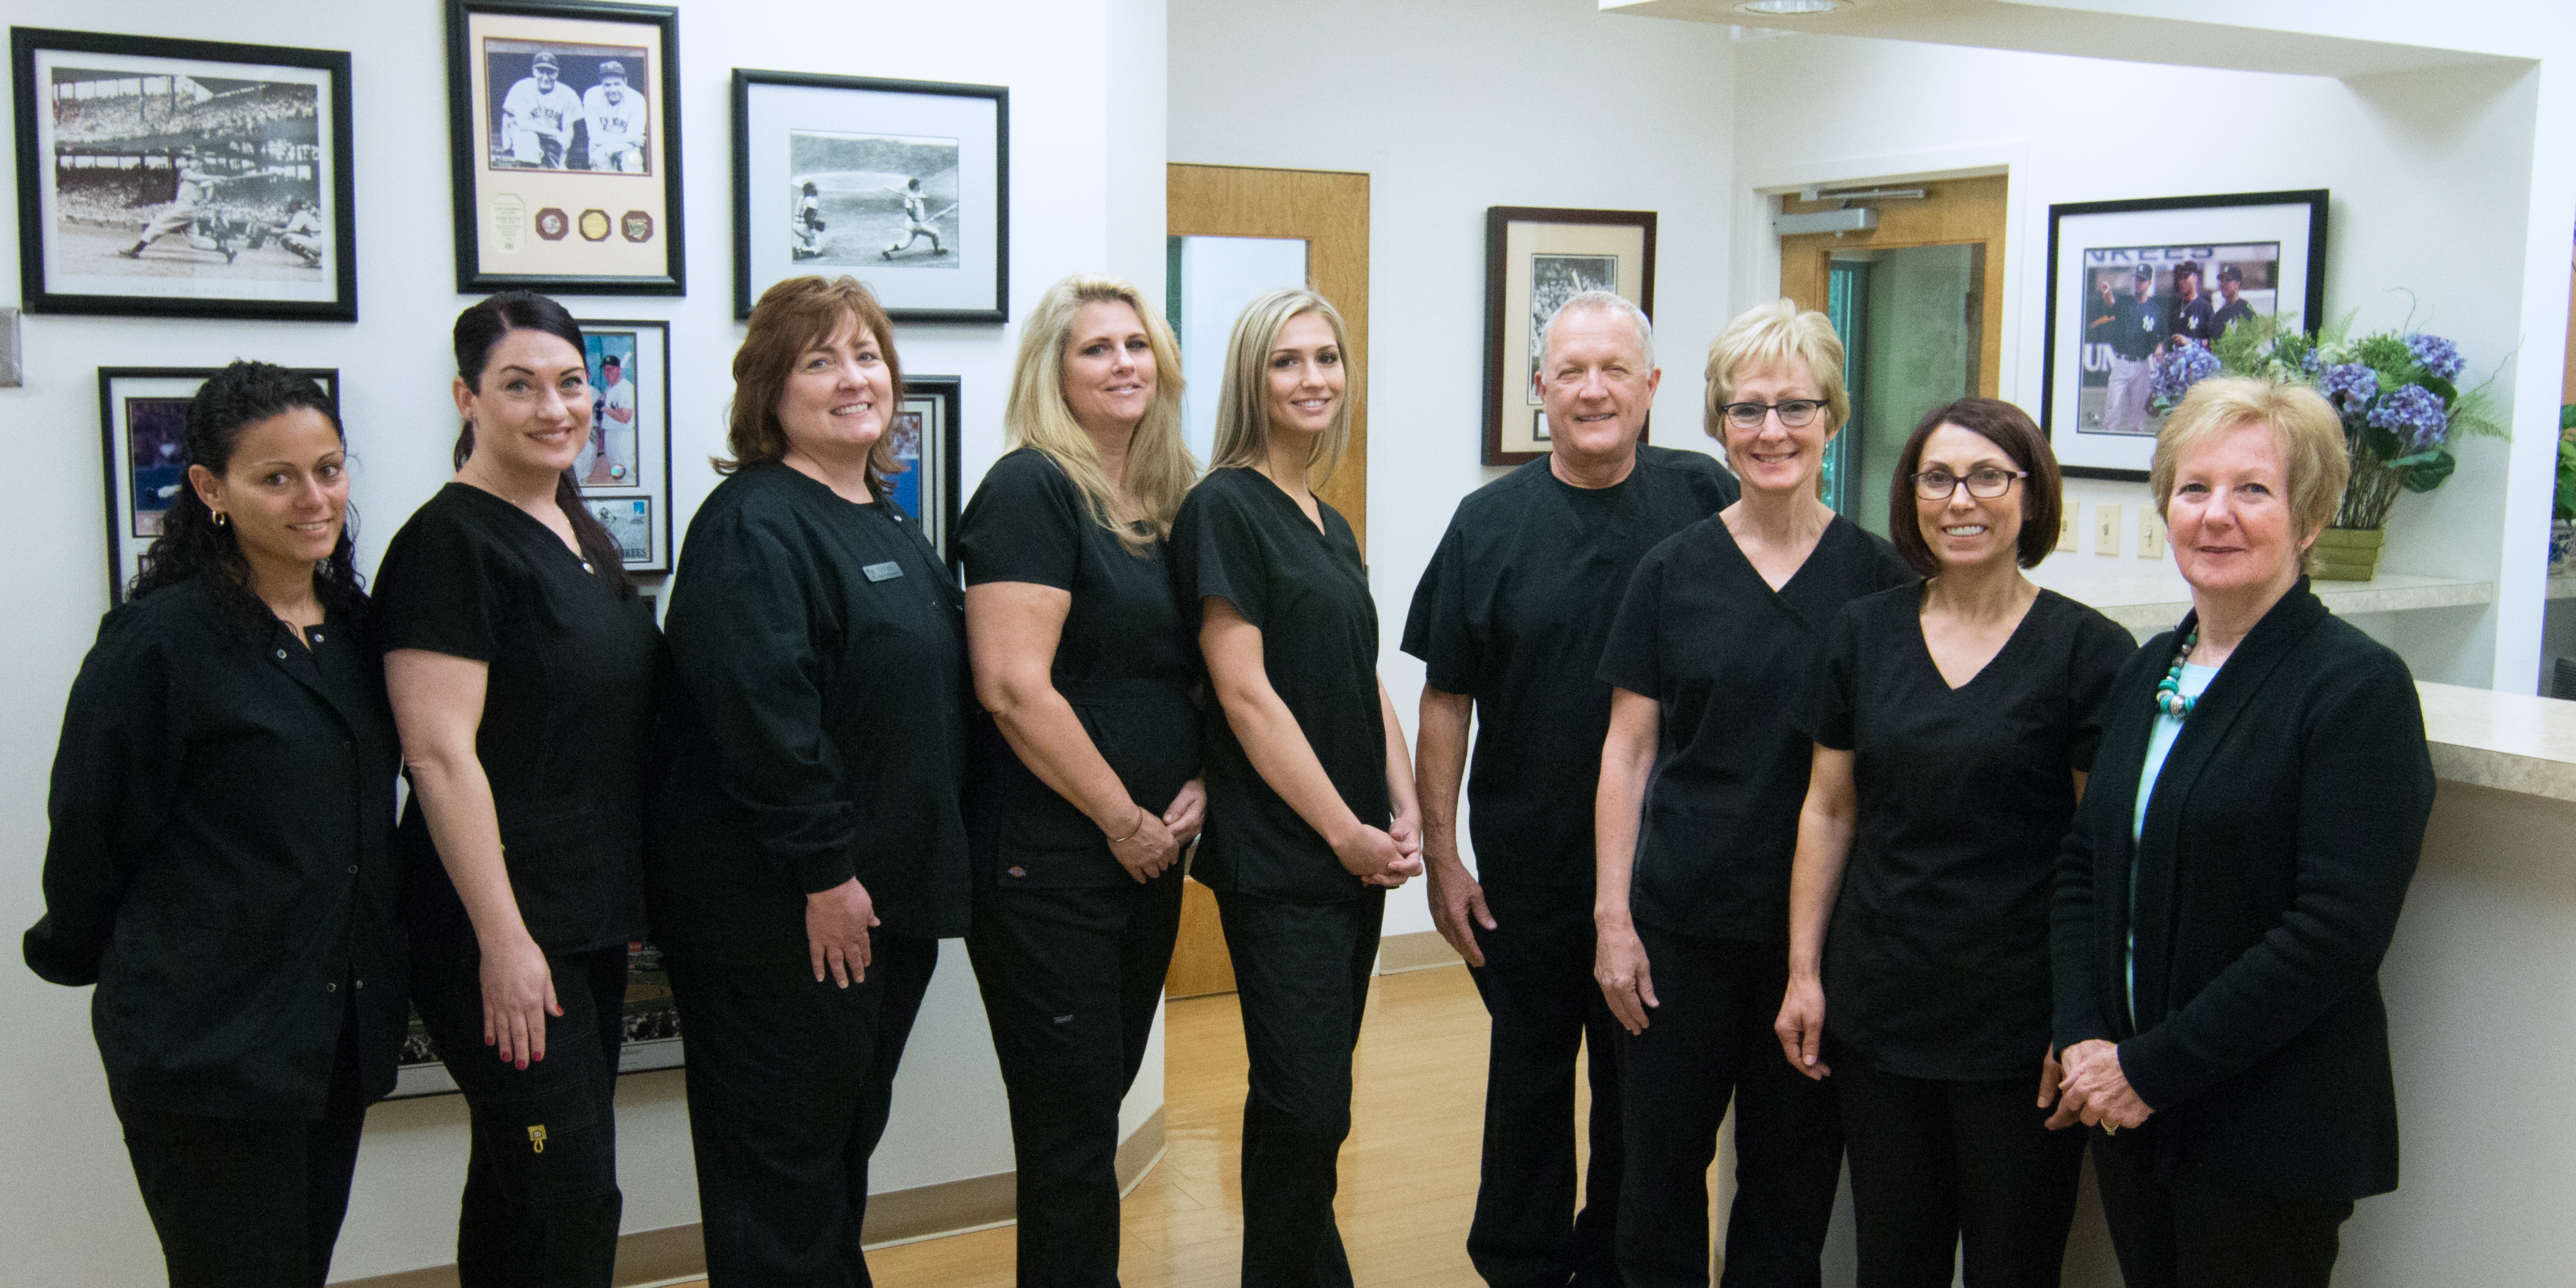 The Office of Dr. Dennis L. Balazsi, DMD (A Simply Beautiful Smiles Affiliate) reviews | Dental Hygienists at 1262 Whitehorse Hamilton Square Rd - Hamilton Township NJ